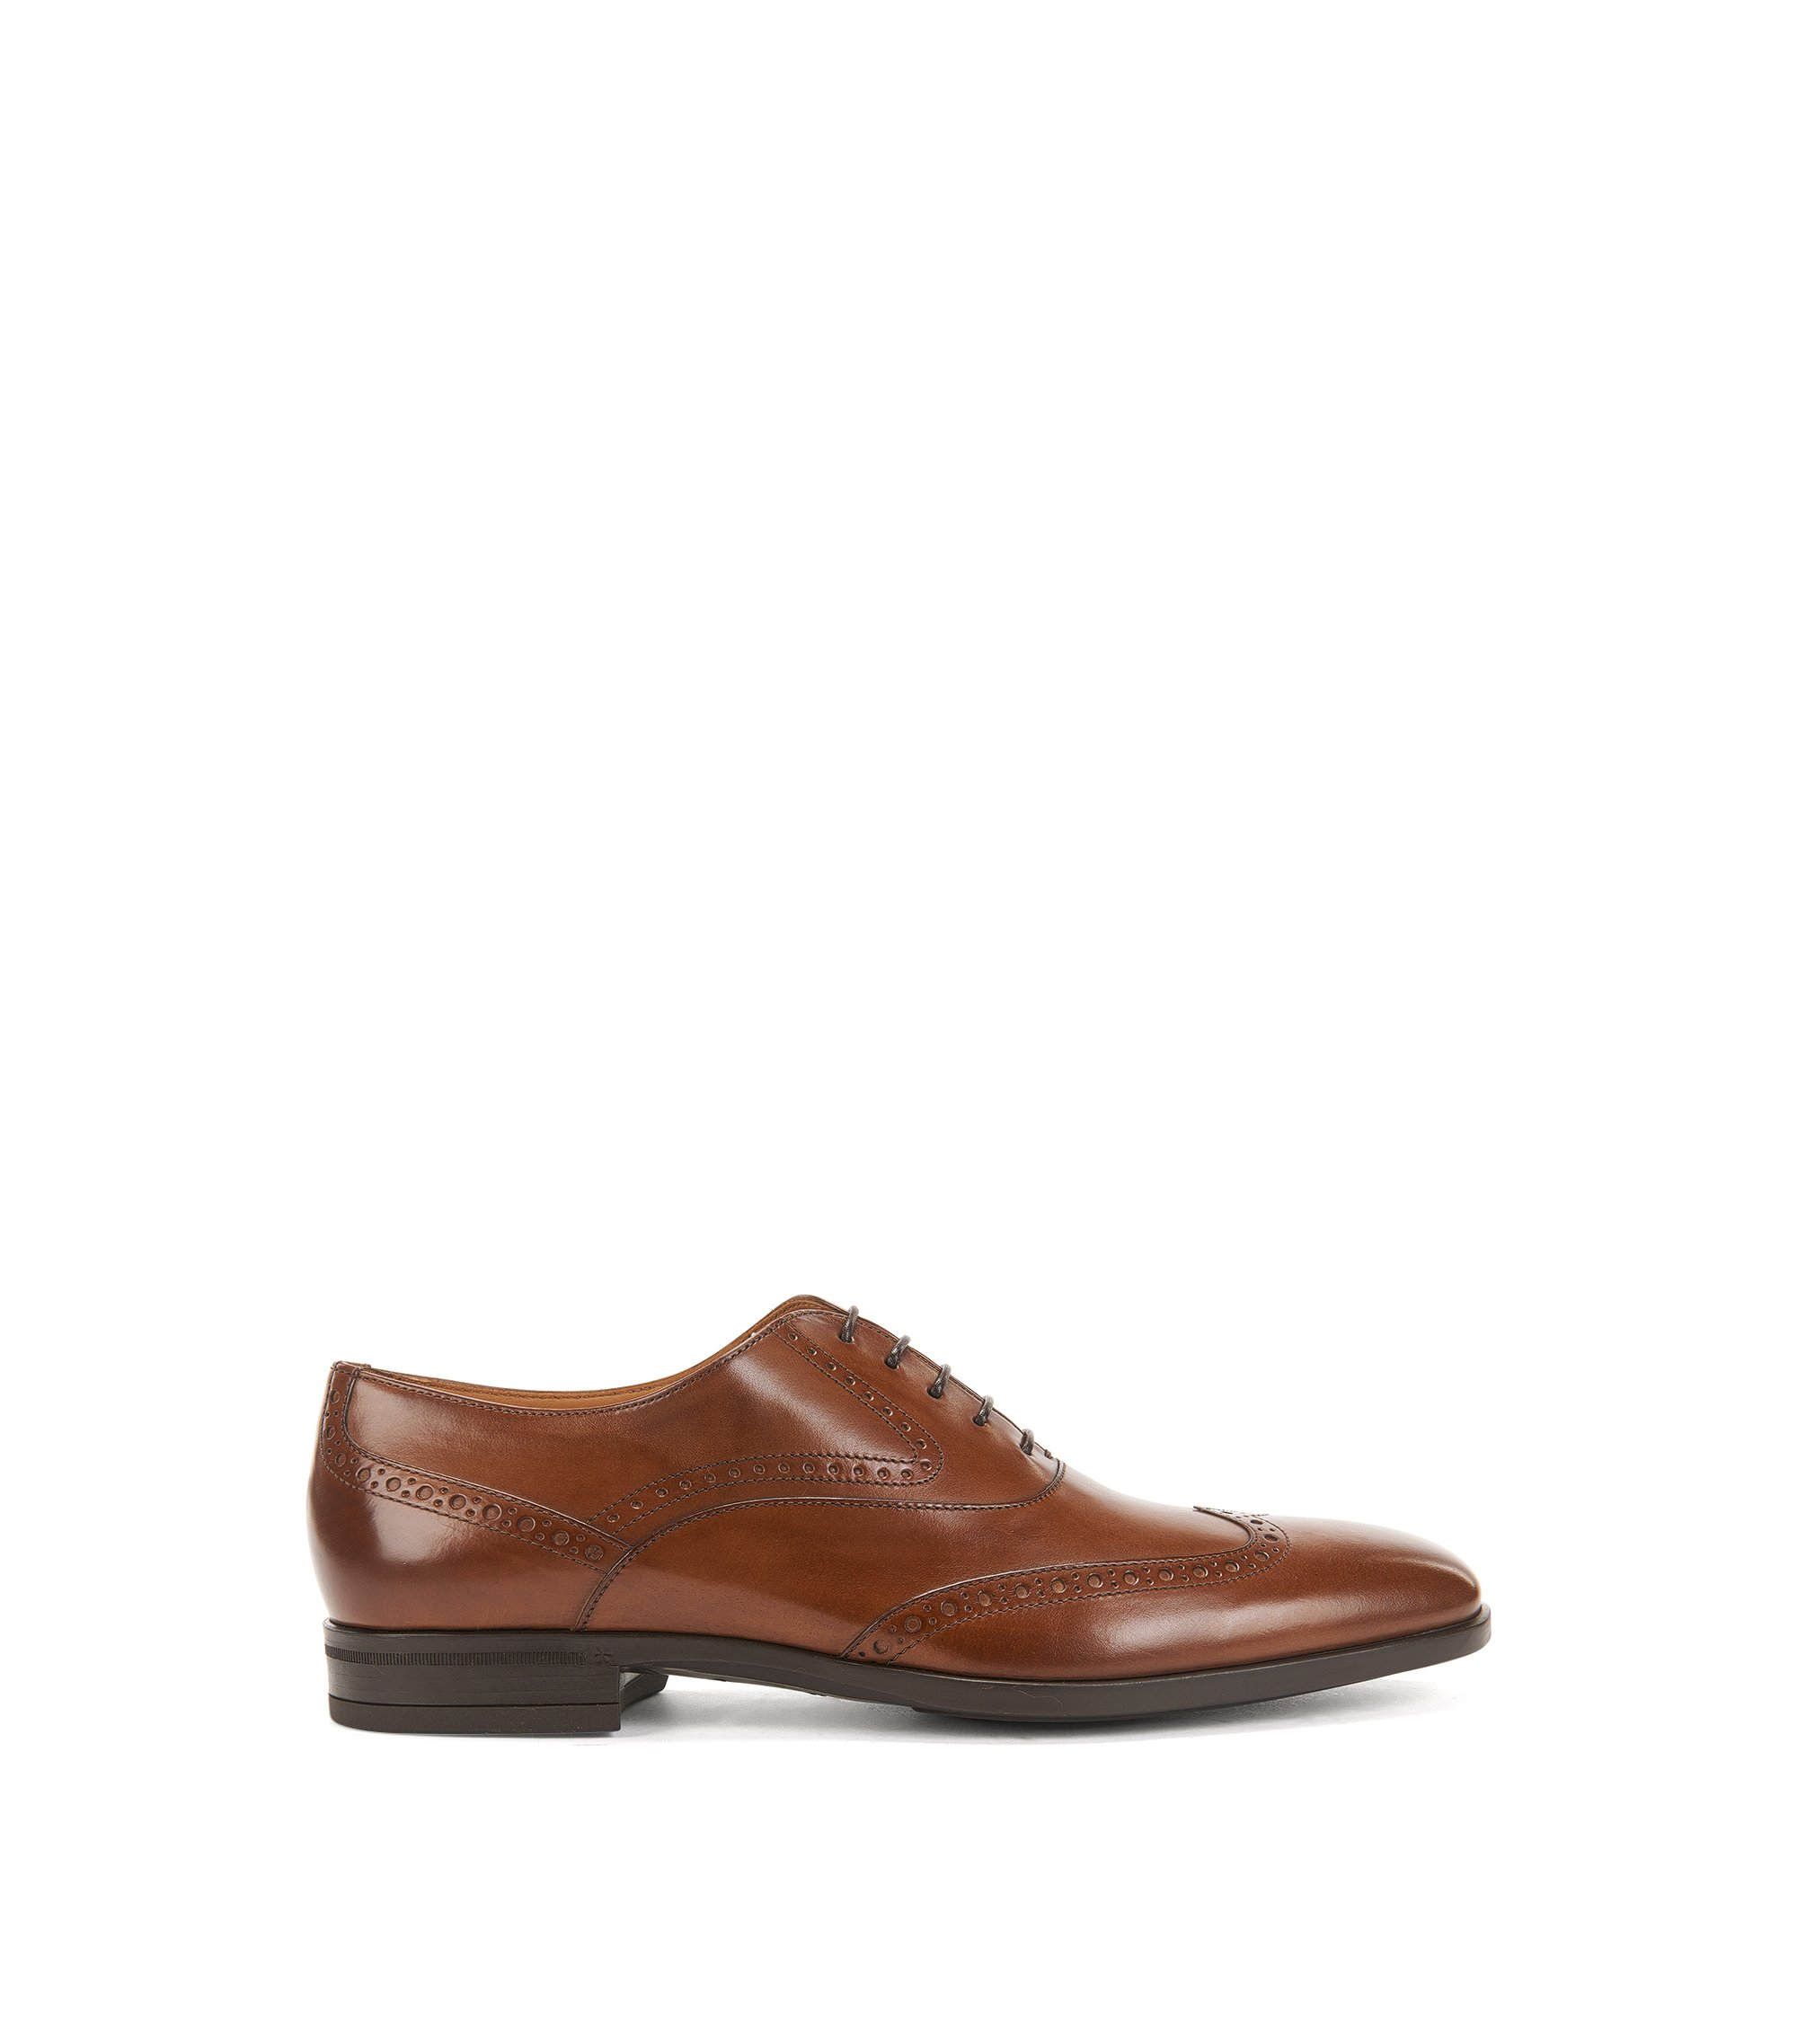 Leather Wingtip Shoe | Kensington Oxfr, Khaki